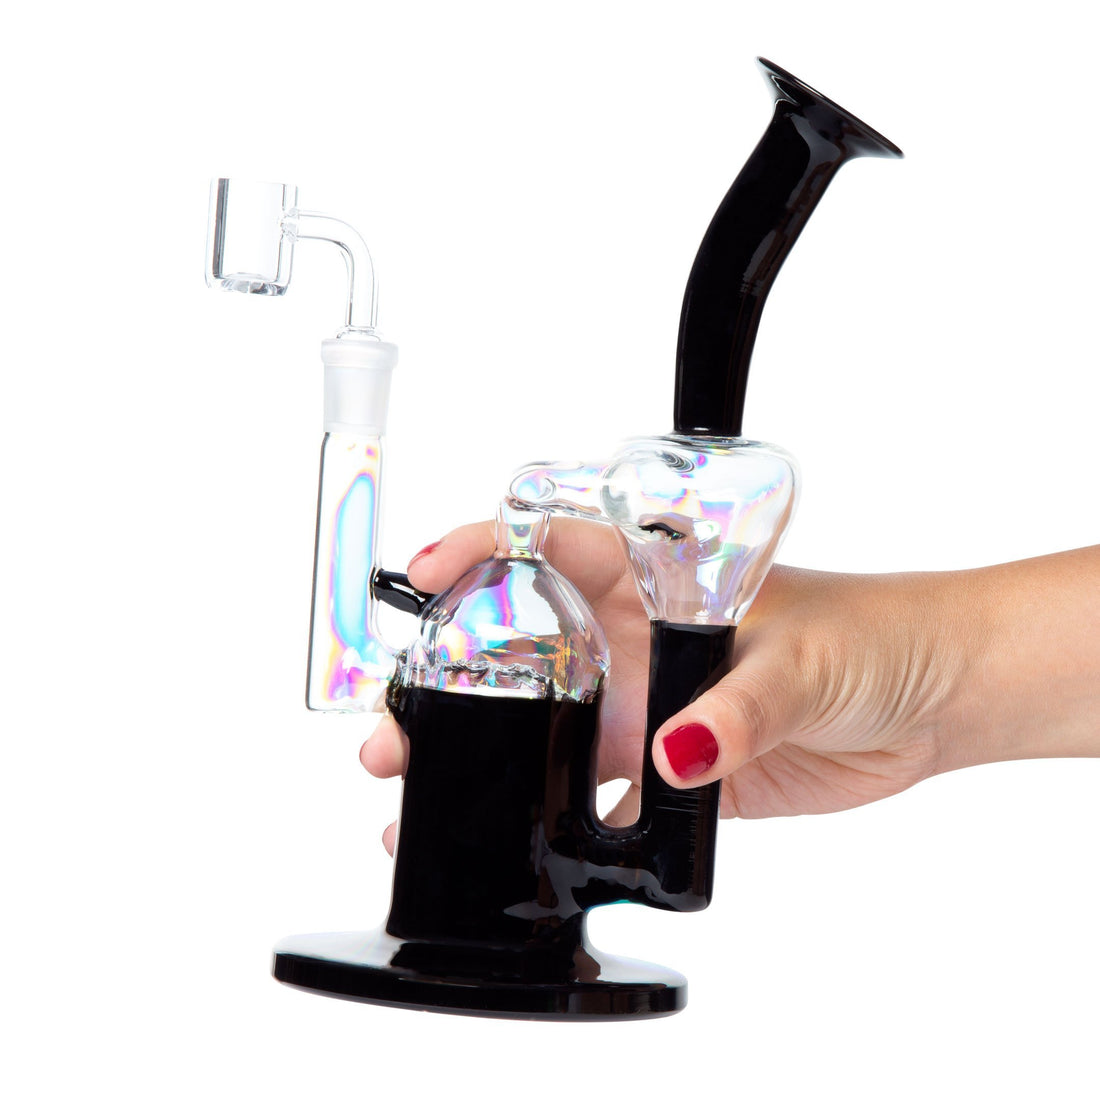 Envy Glass Dichro Coated Recycler - Black - 420 Science - The most trusted online smoke shop.